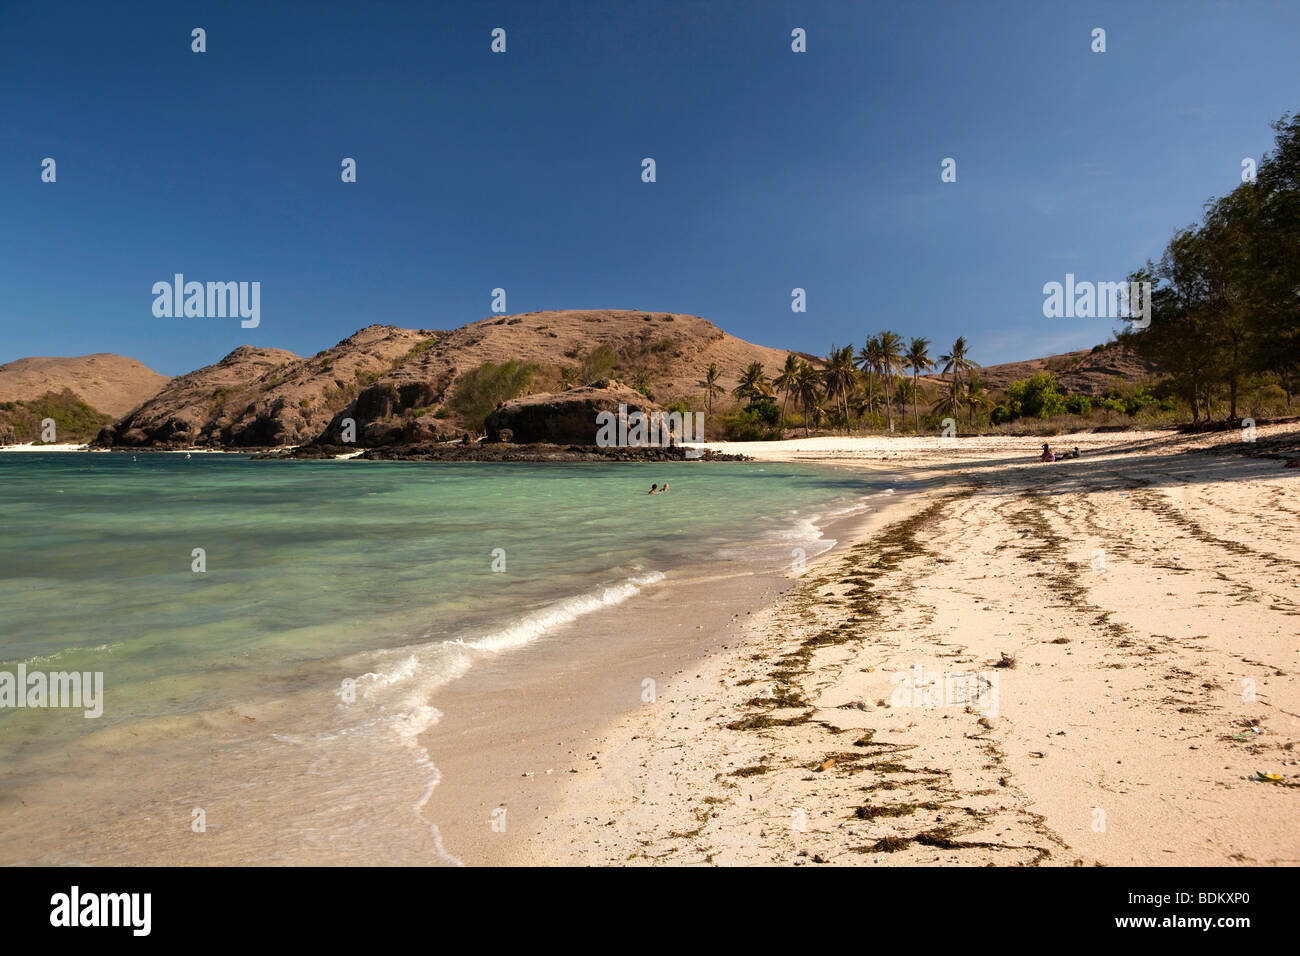 Indonesia, Lombok, Tanjung, visitors enjoying almost empty idyllic tropical beach - Stock Image